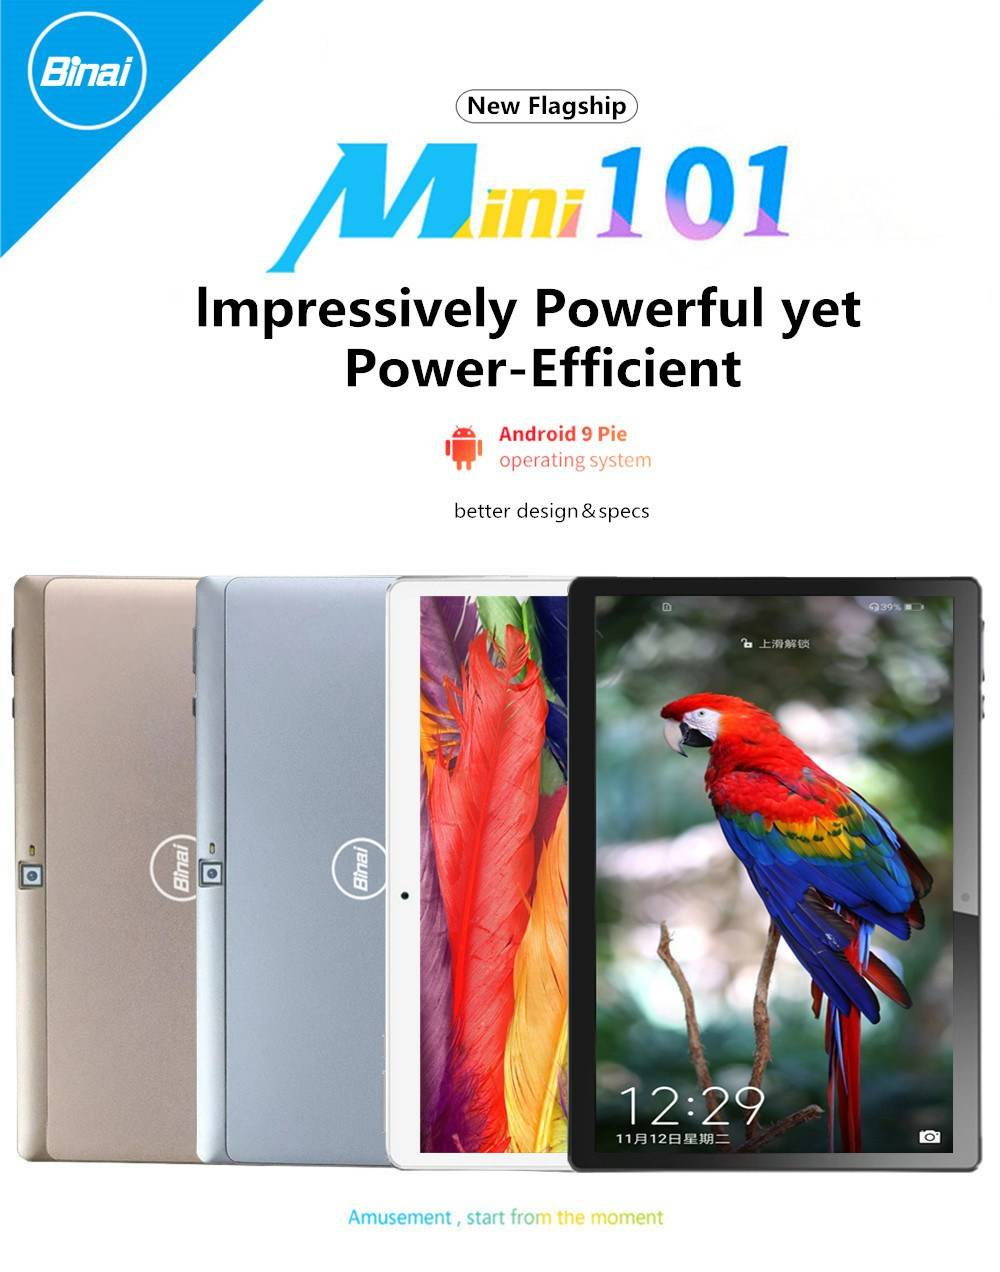 Binai Mini101 Ultimate Edition 4G LTE Tablet PC 10.1 Inch IPS Screen MediaTek MTK6763 Octa Core Android 9.0 2GB RAM 32GB ROM - Silver